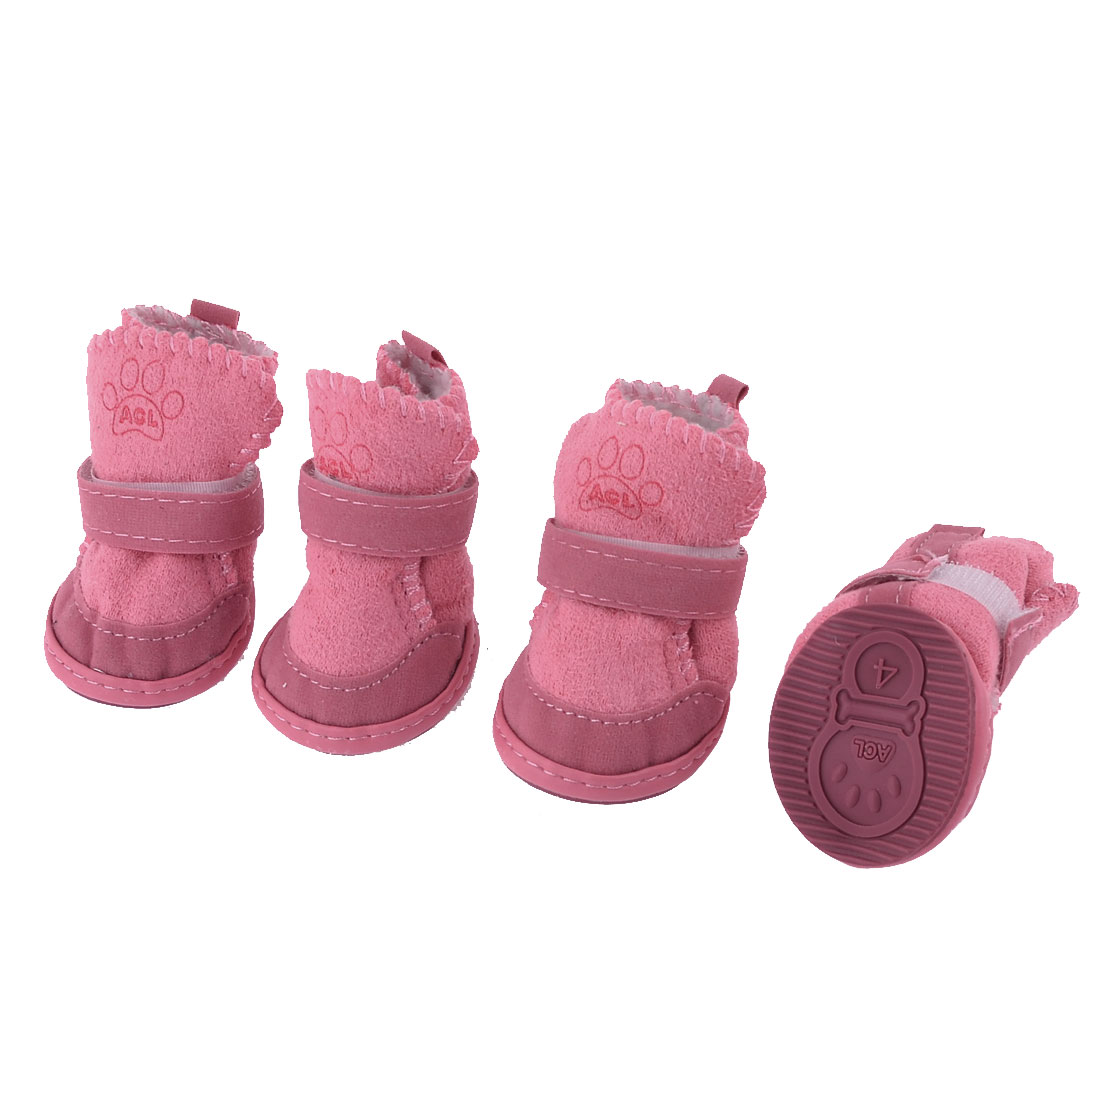 Pet Dog Winter Walking Paw Print Detachable Closure Shoes Boots Pink Size 4 2 Pairs